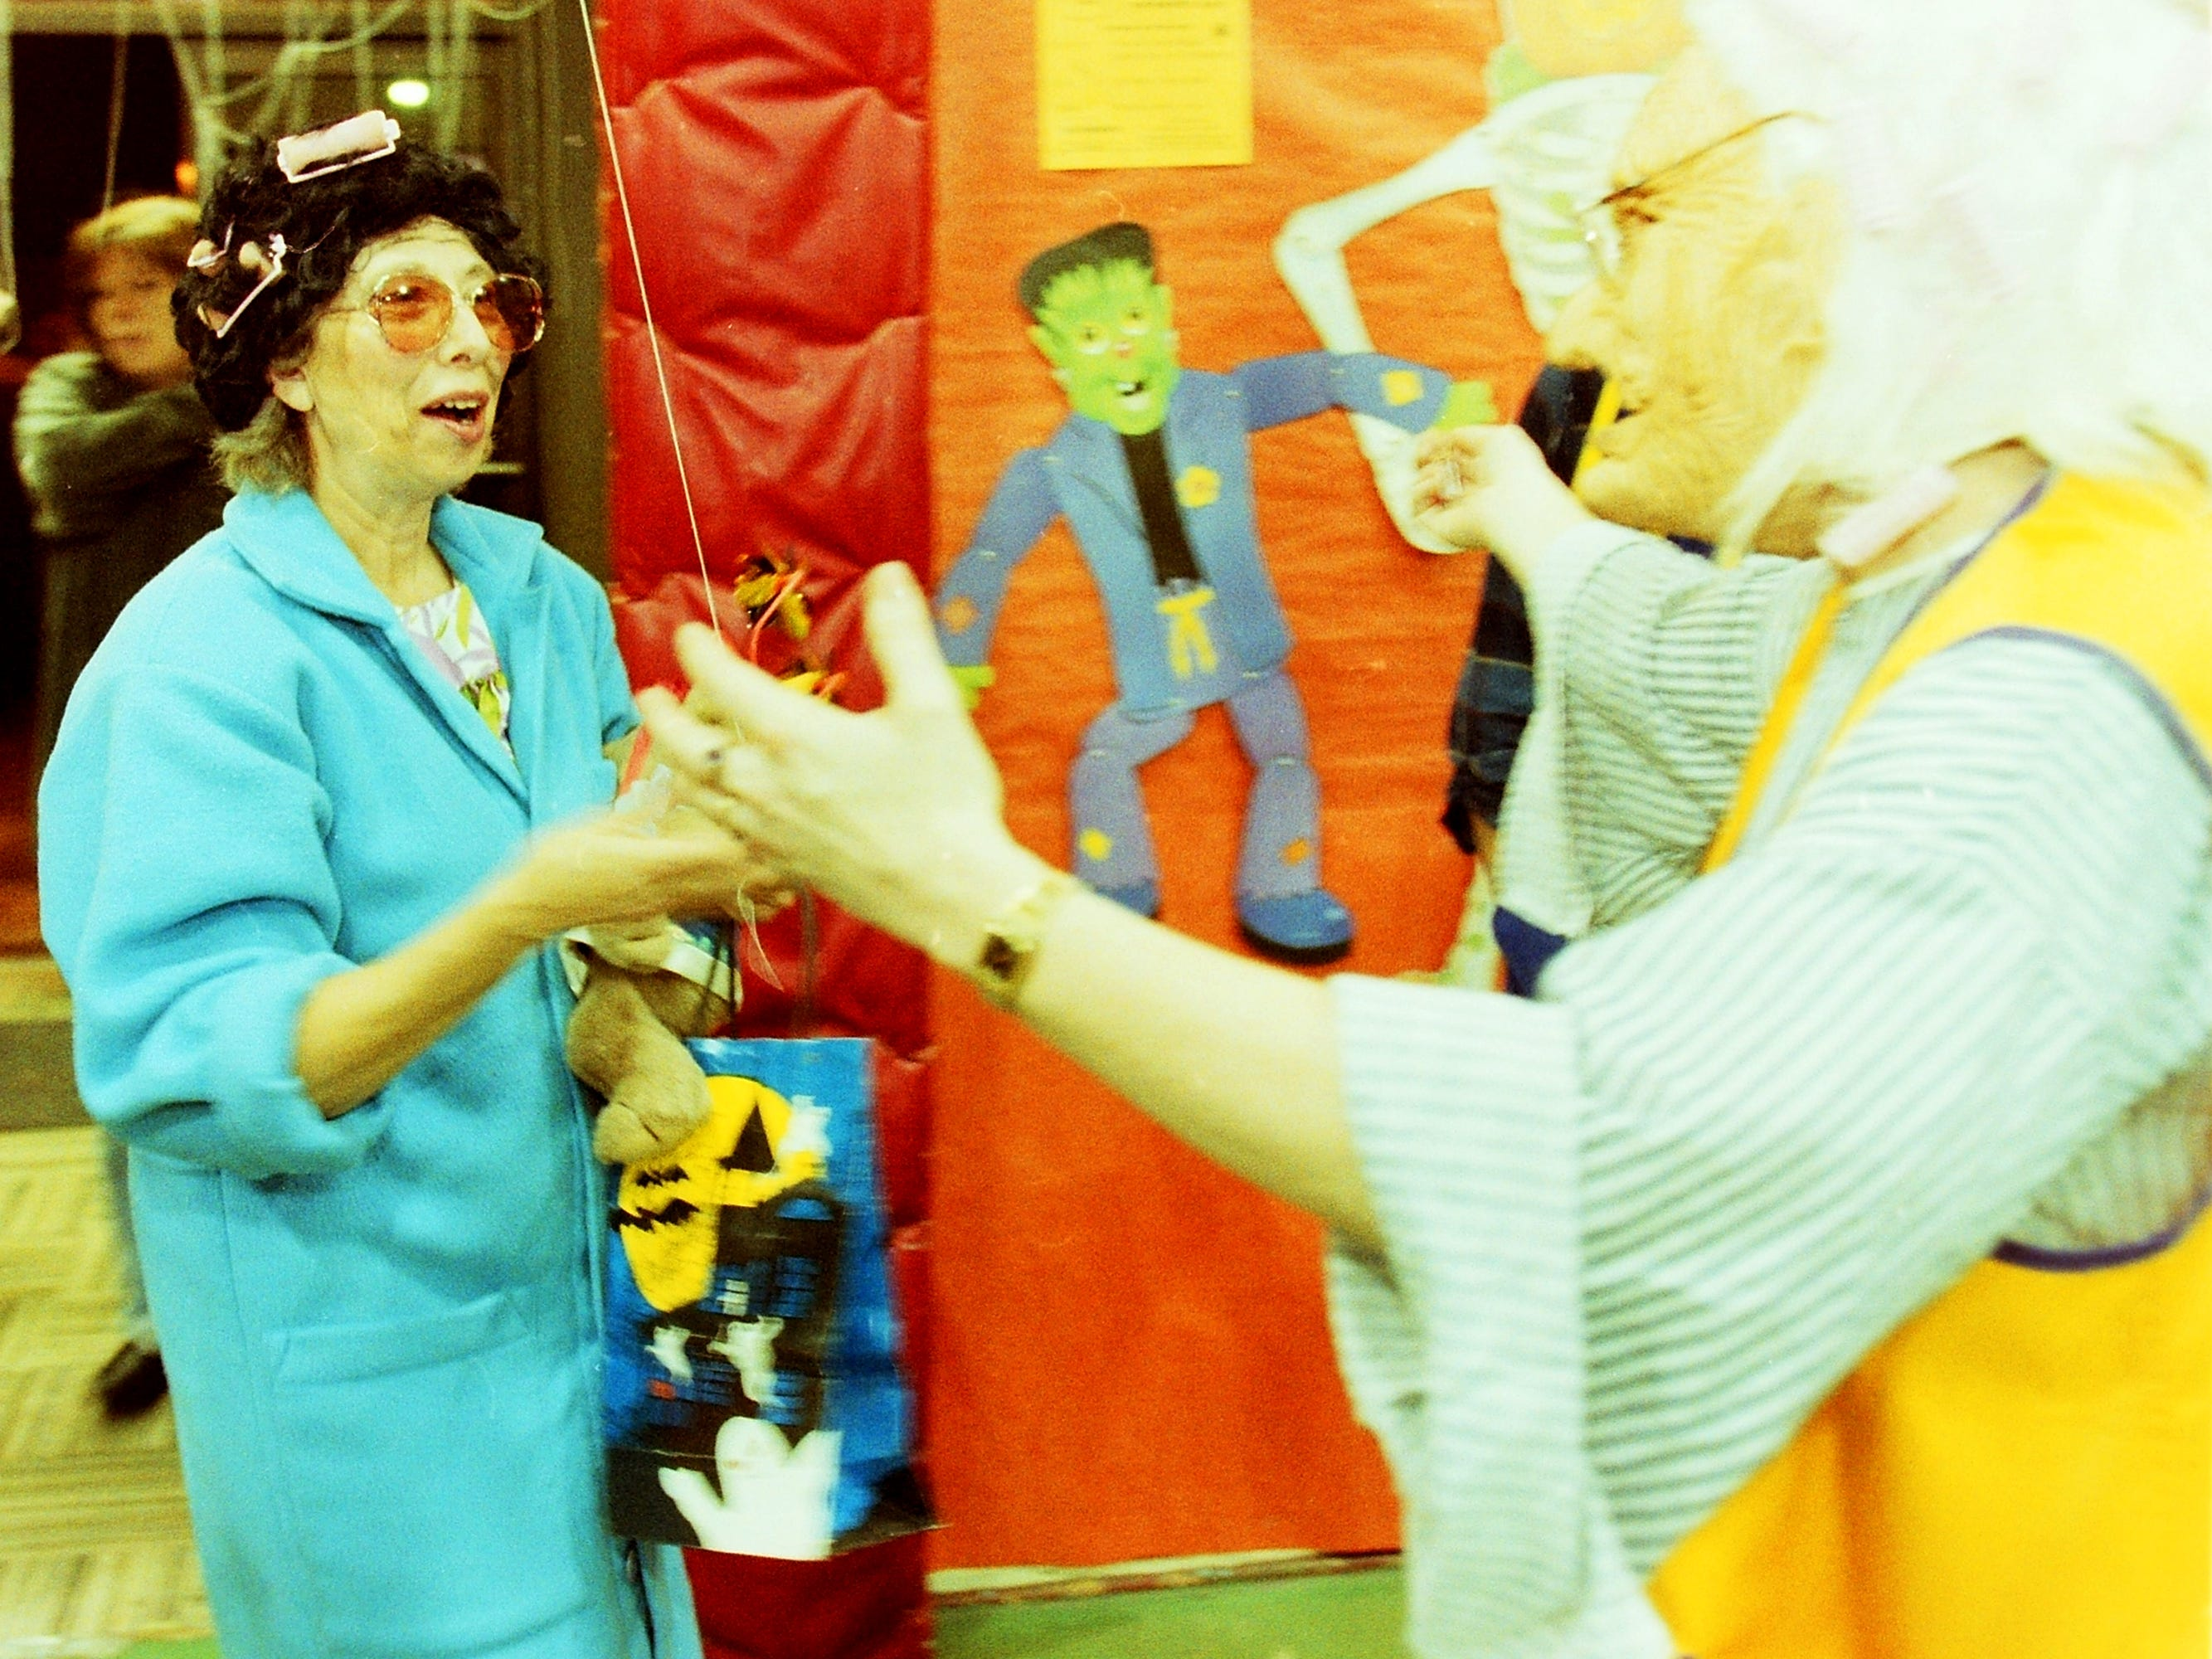 10/31/92All City Halloween Party